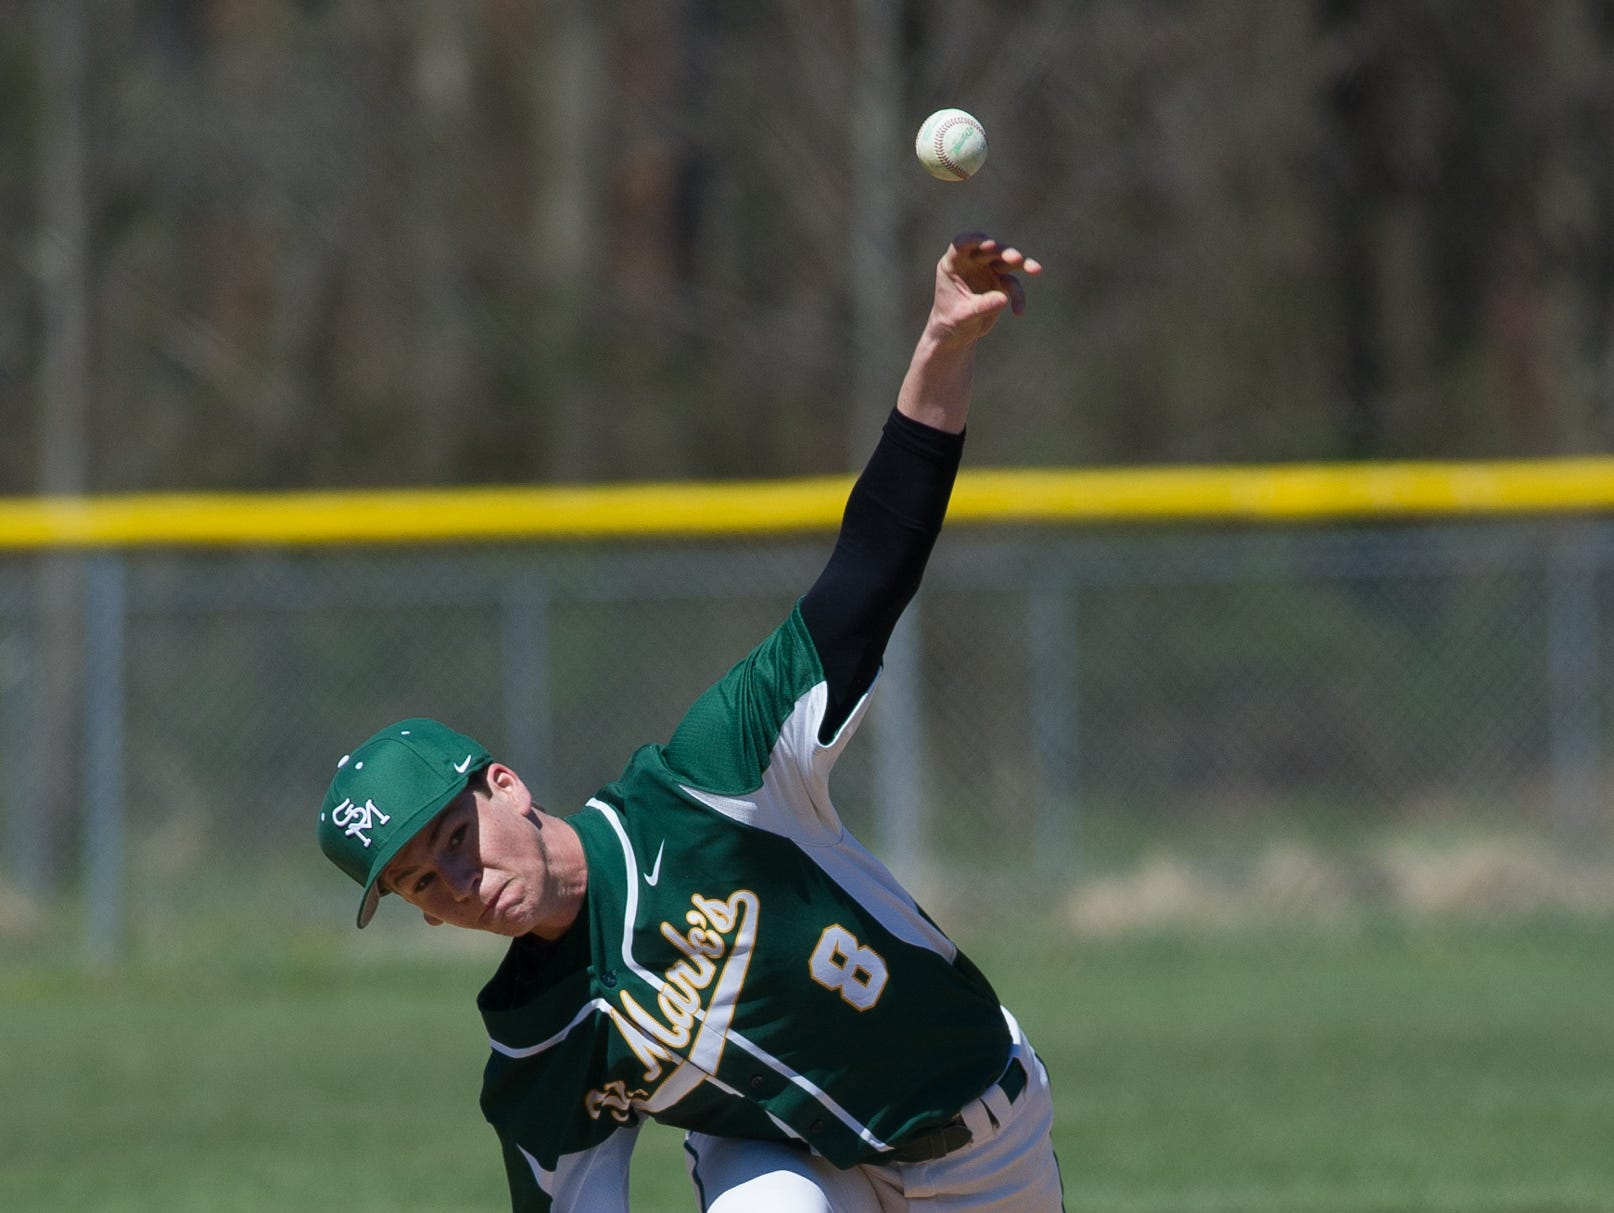 St. Mark's pitcher Sean Gilardi (8) throws the ball in the 2nd inning against Caesar Rodney.